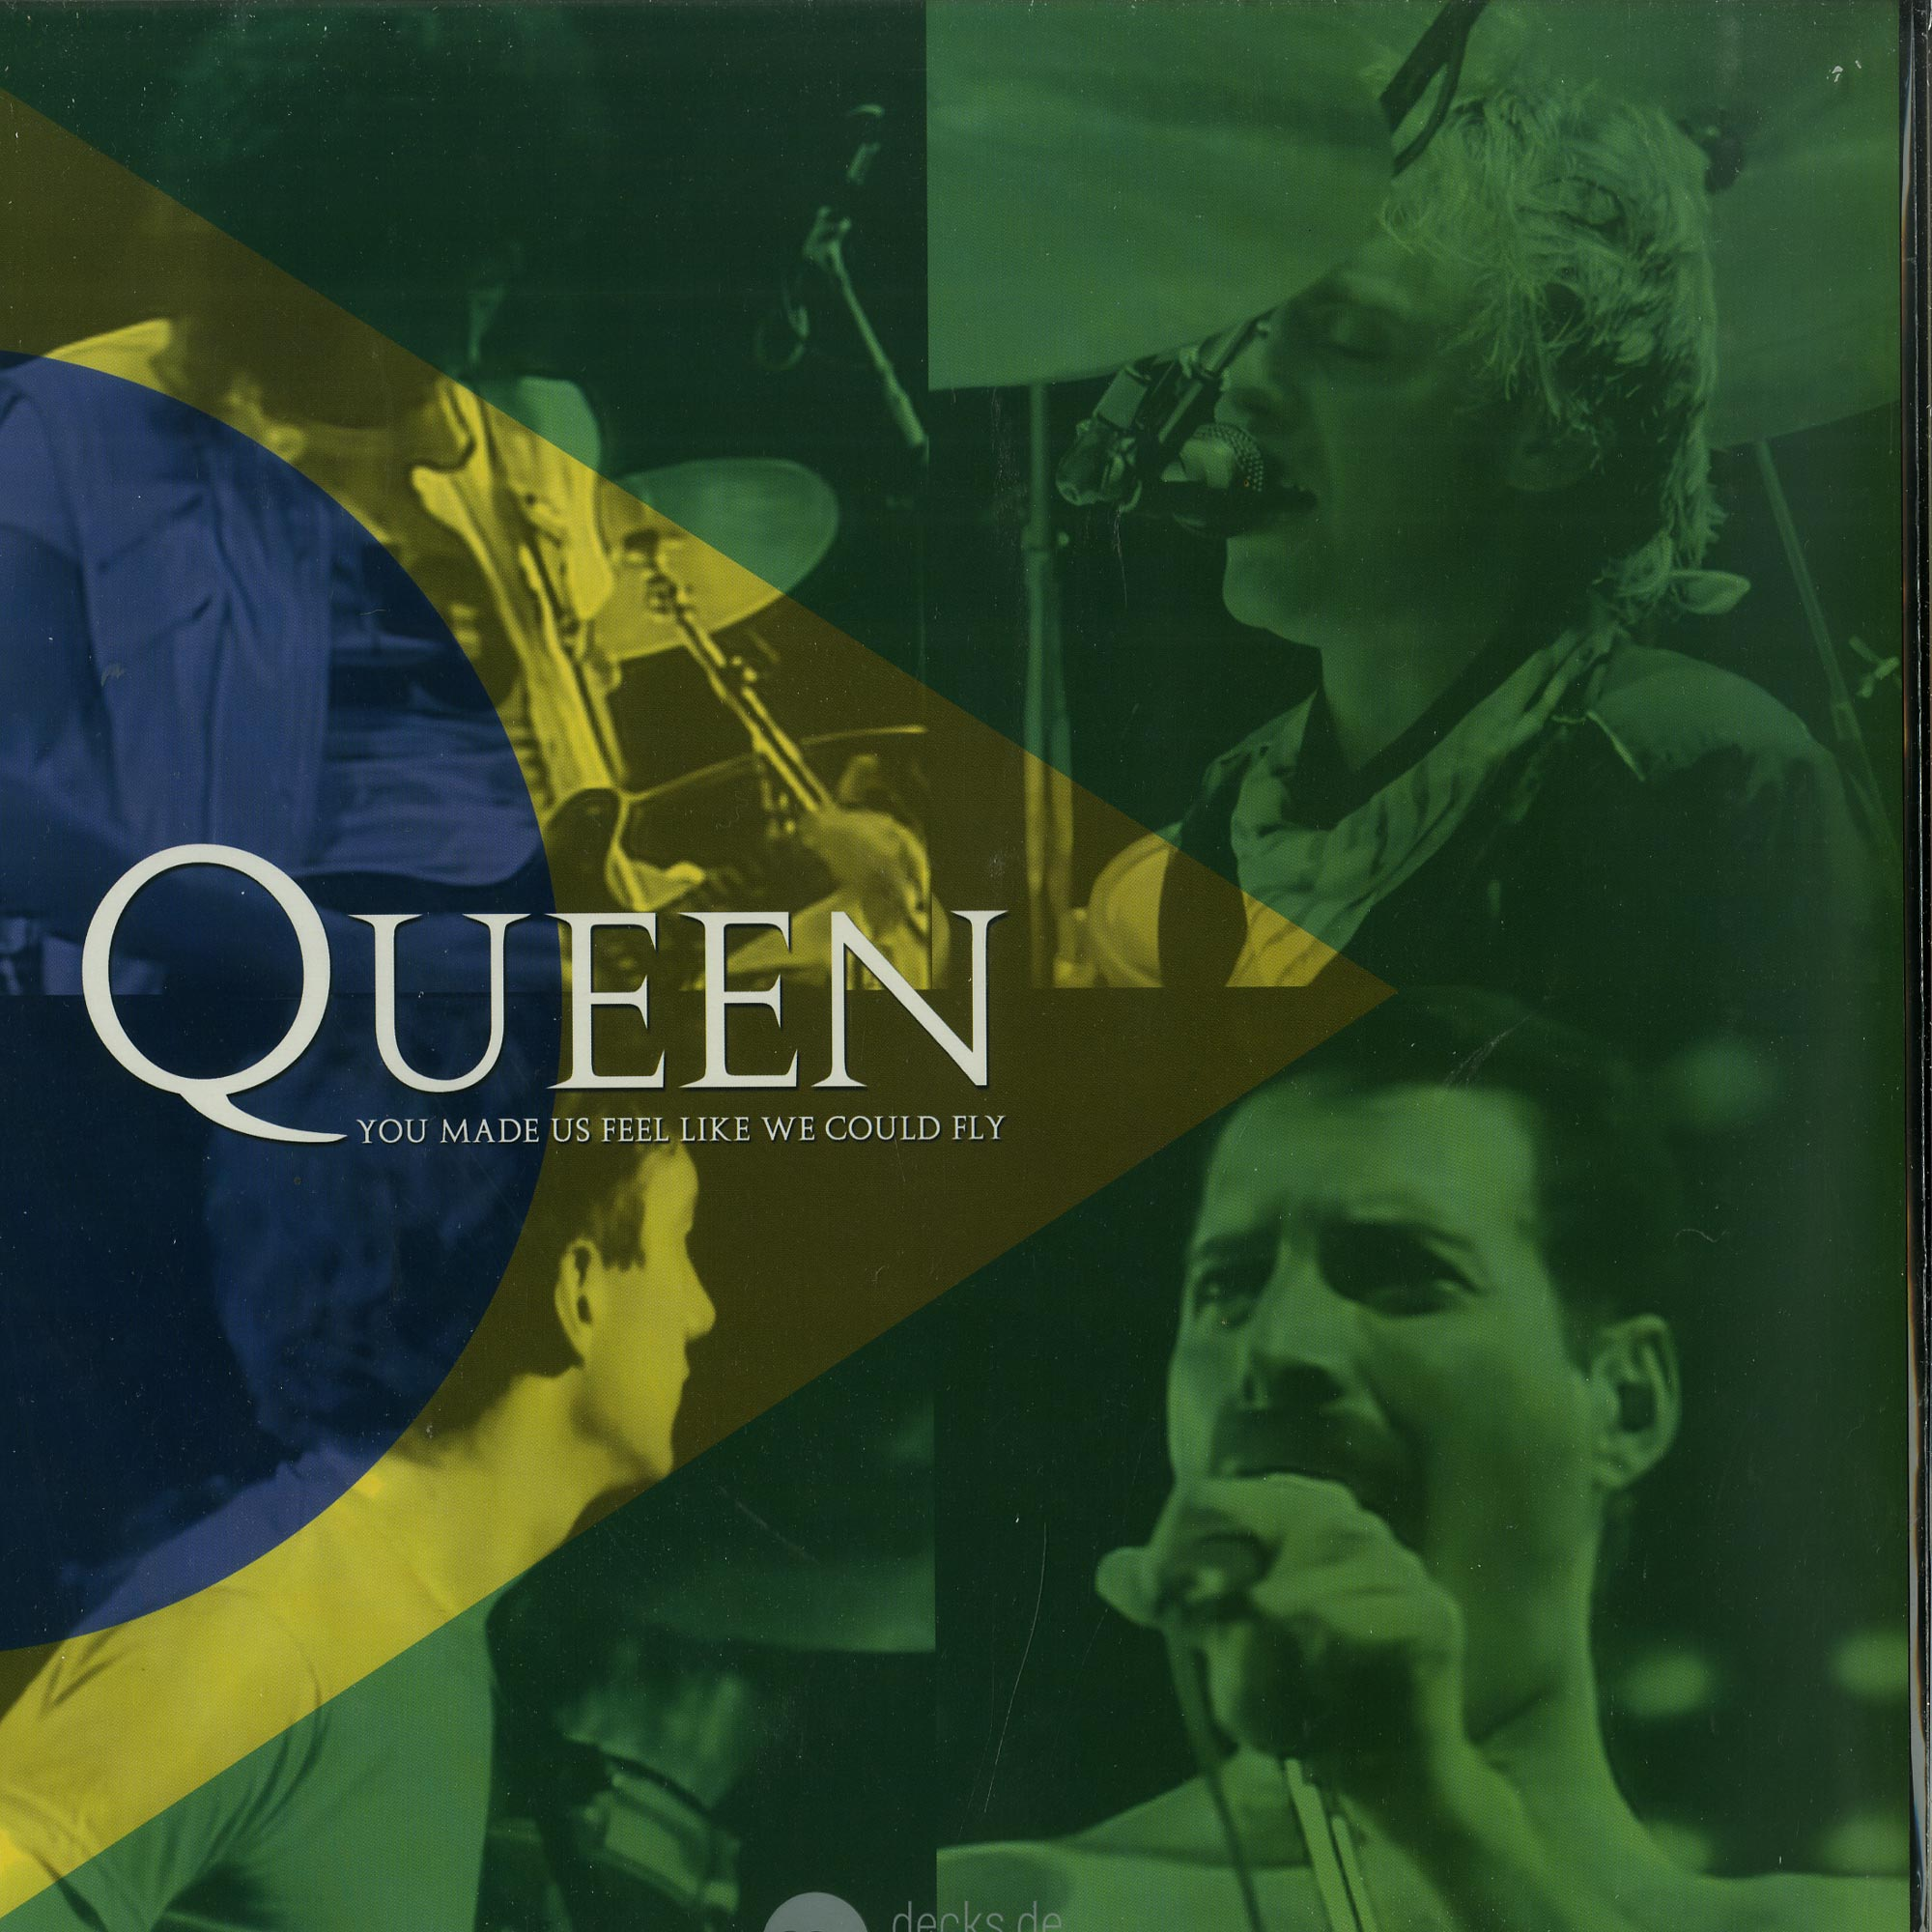 Queen - YOU MADE US FEEL WE COULD FLY